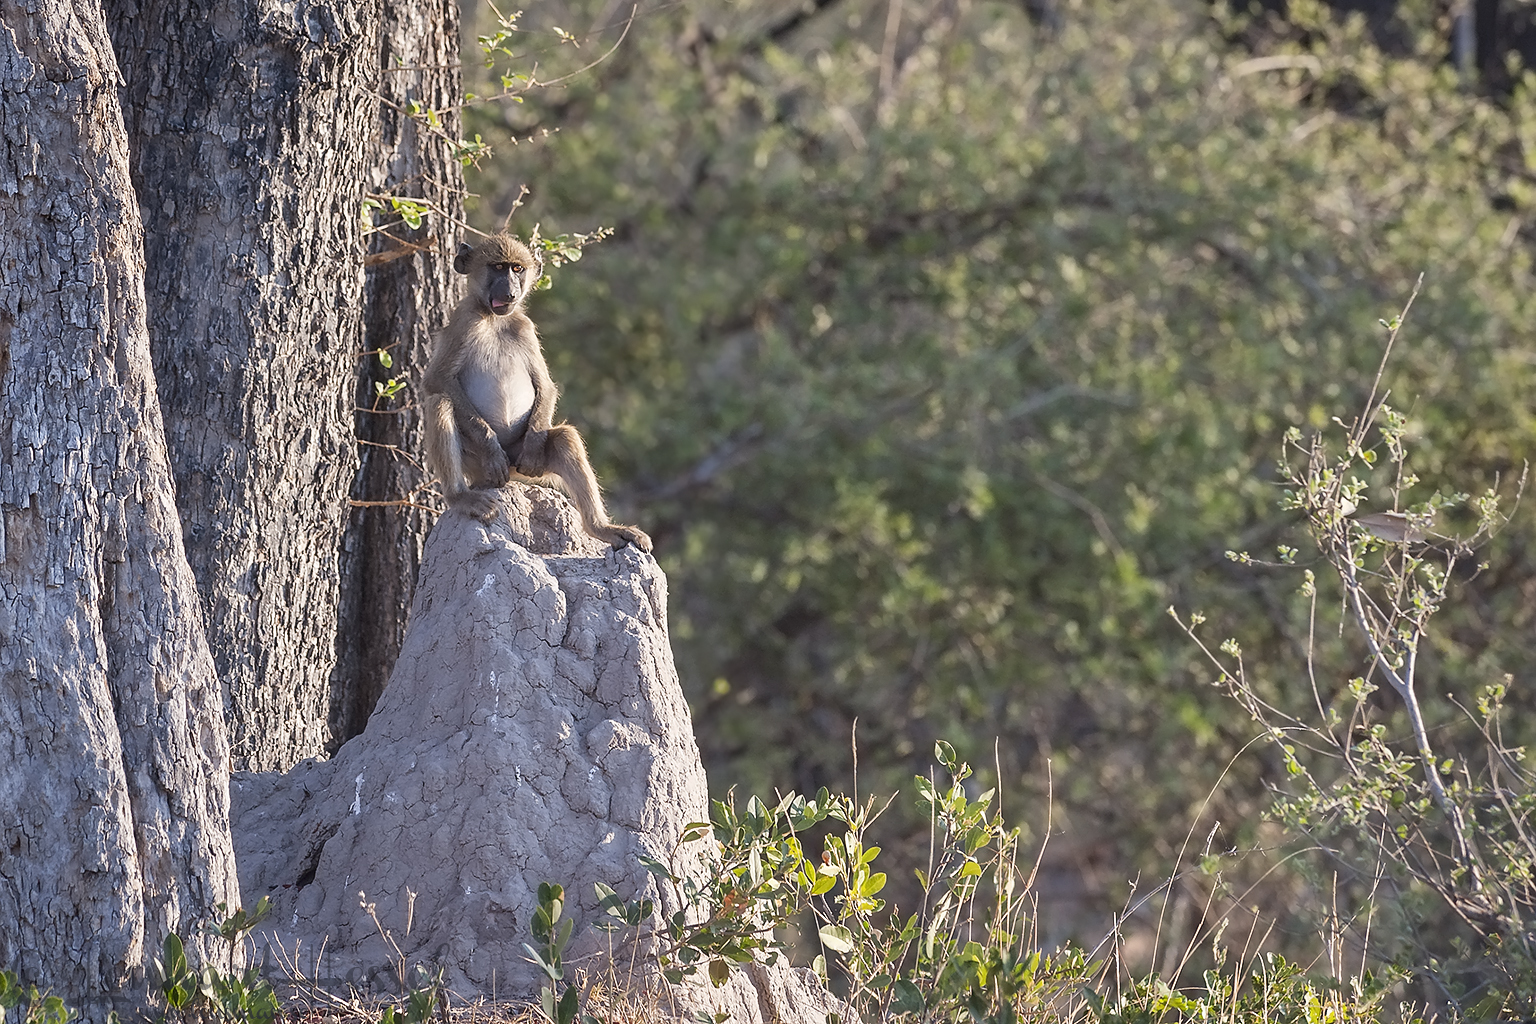 Chacma Baboon in Moremi Game Reserve, Botswana